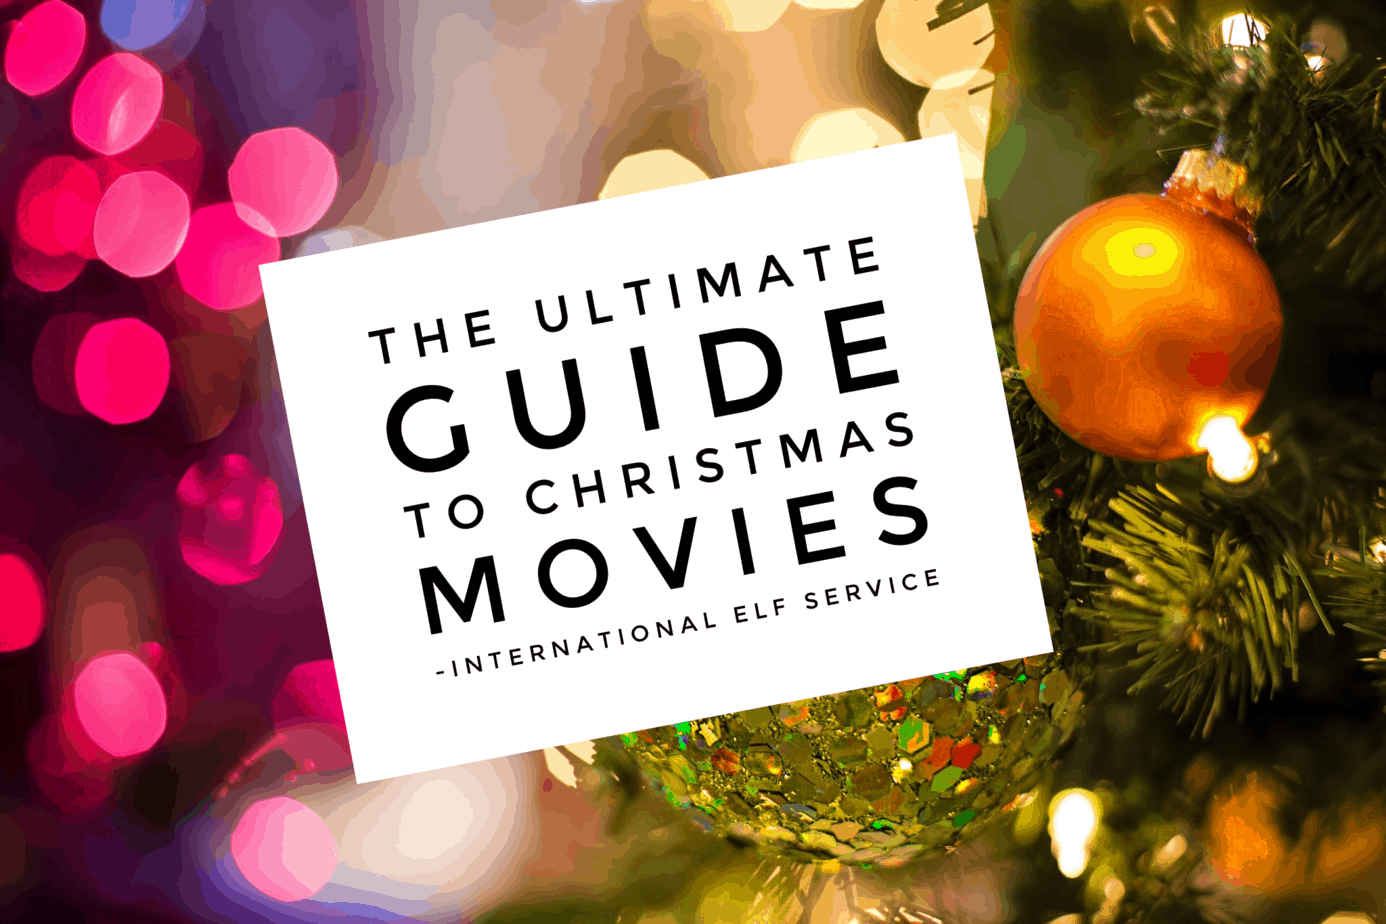 Ultimate Guide To Christmas Movies! - International Elf Service